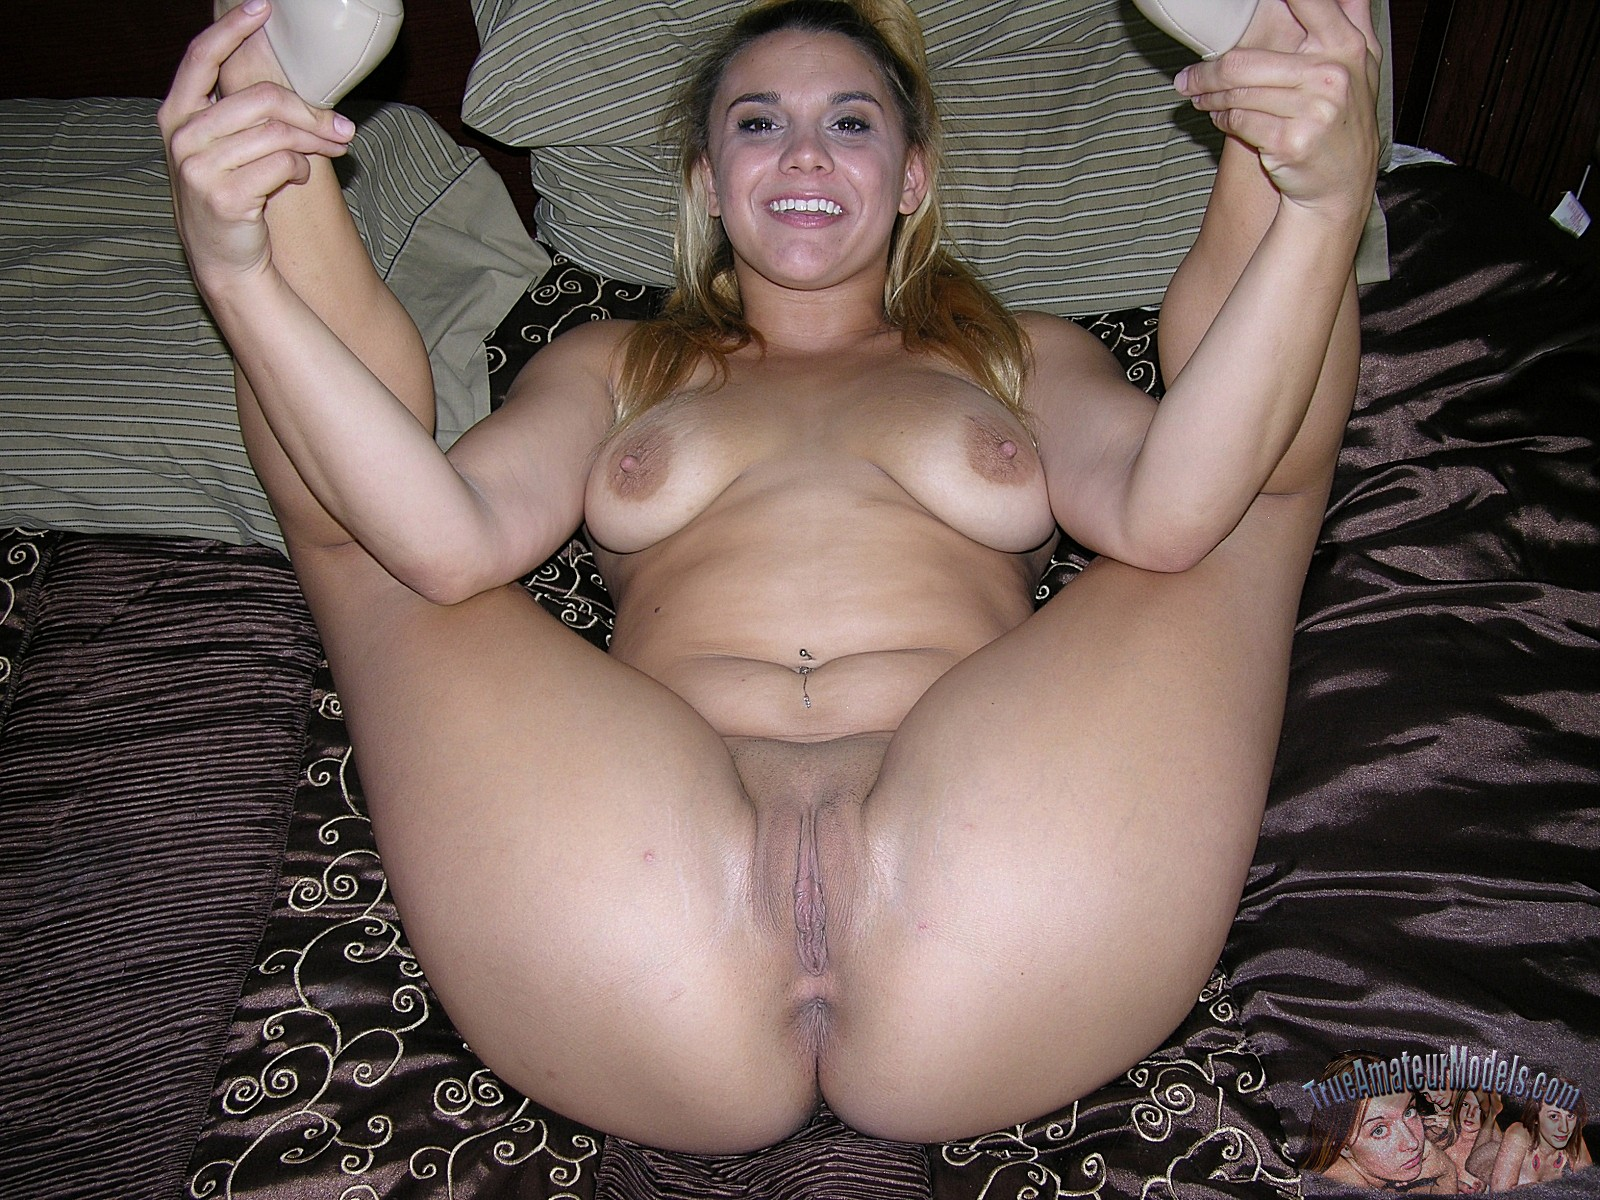 Amature nude latina